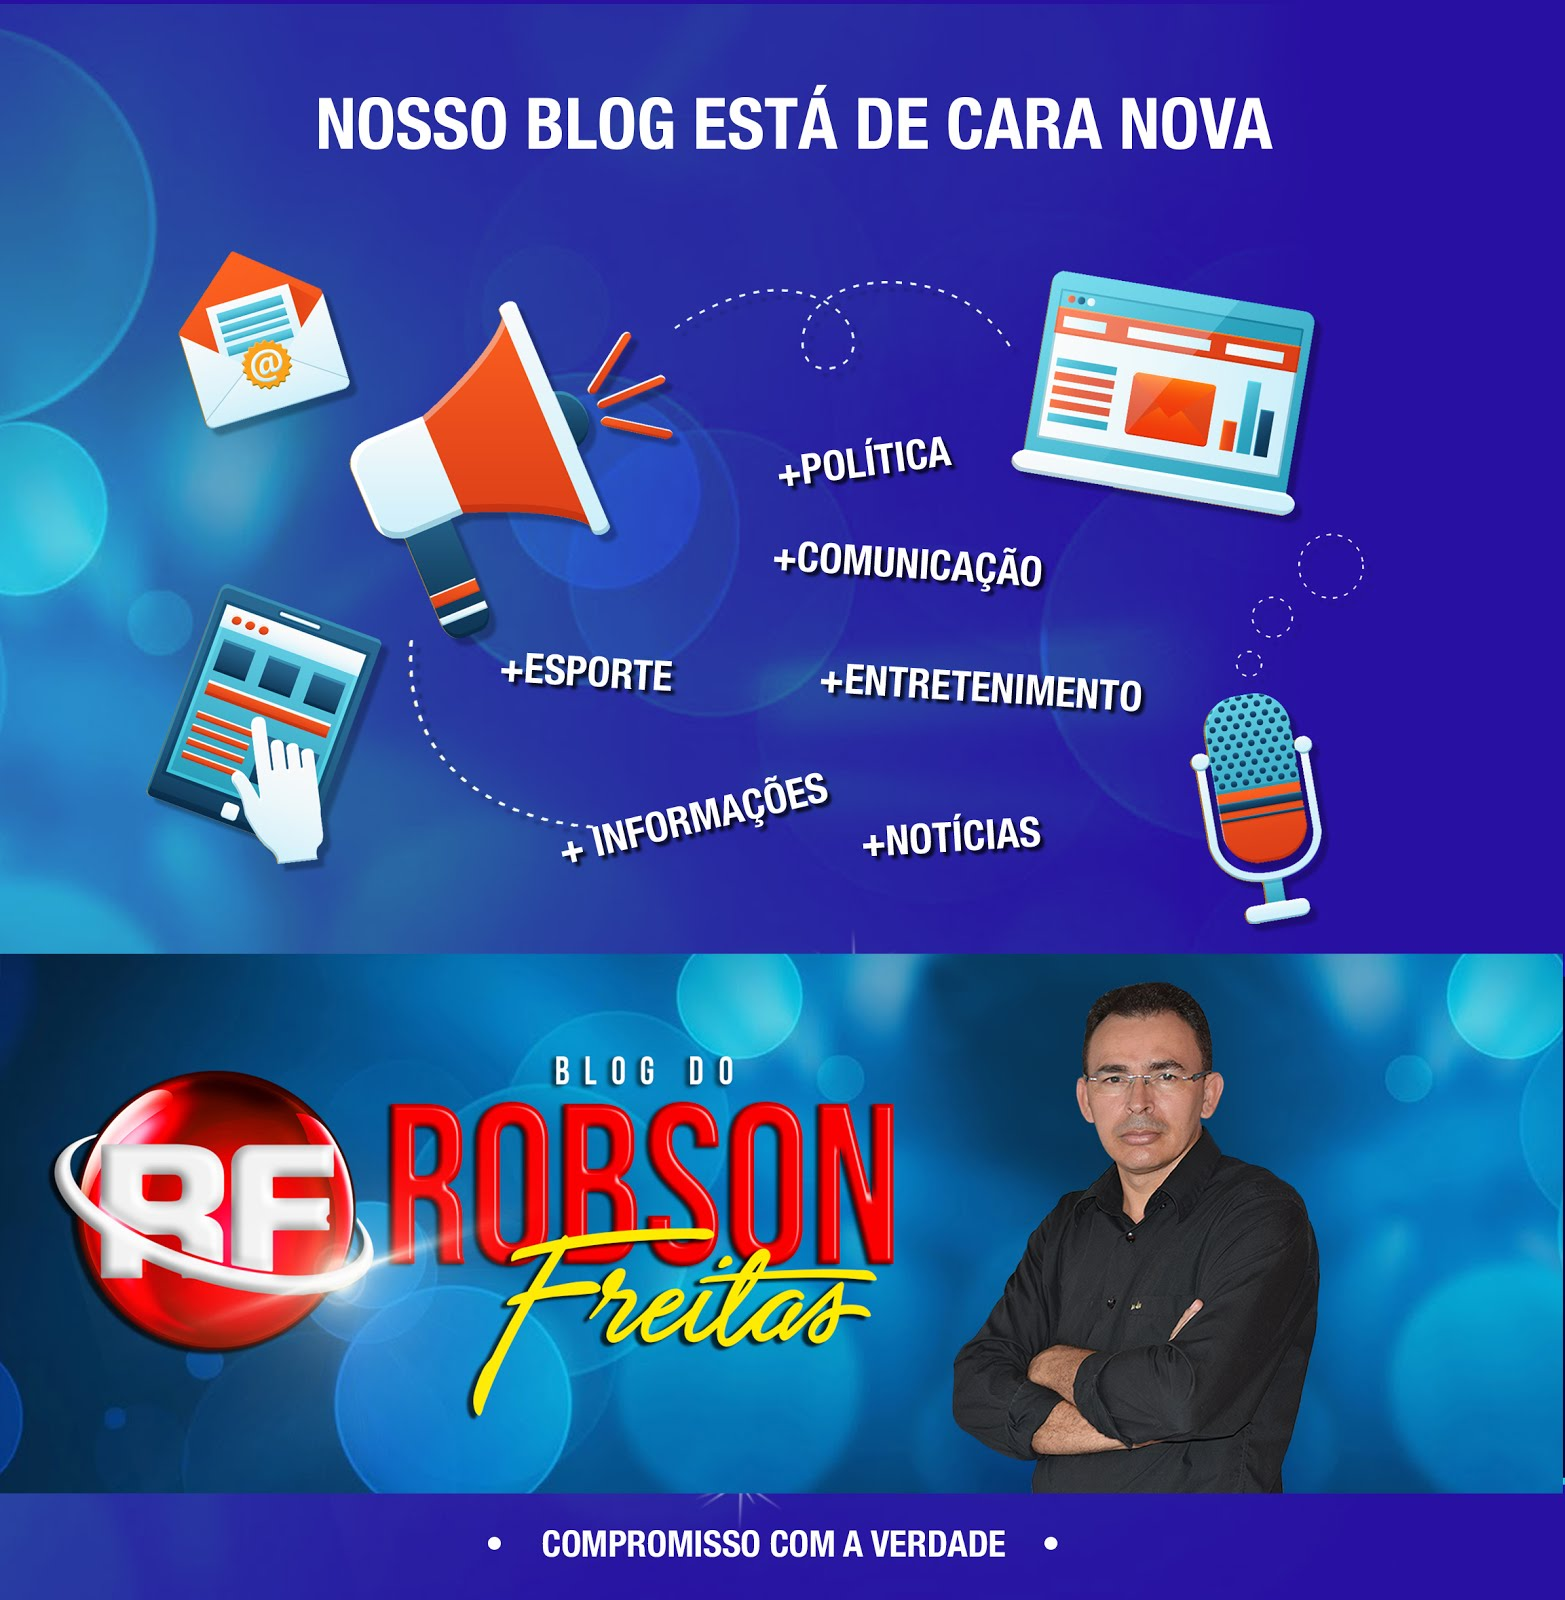 BLOG DO ROBSON FREITAS